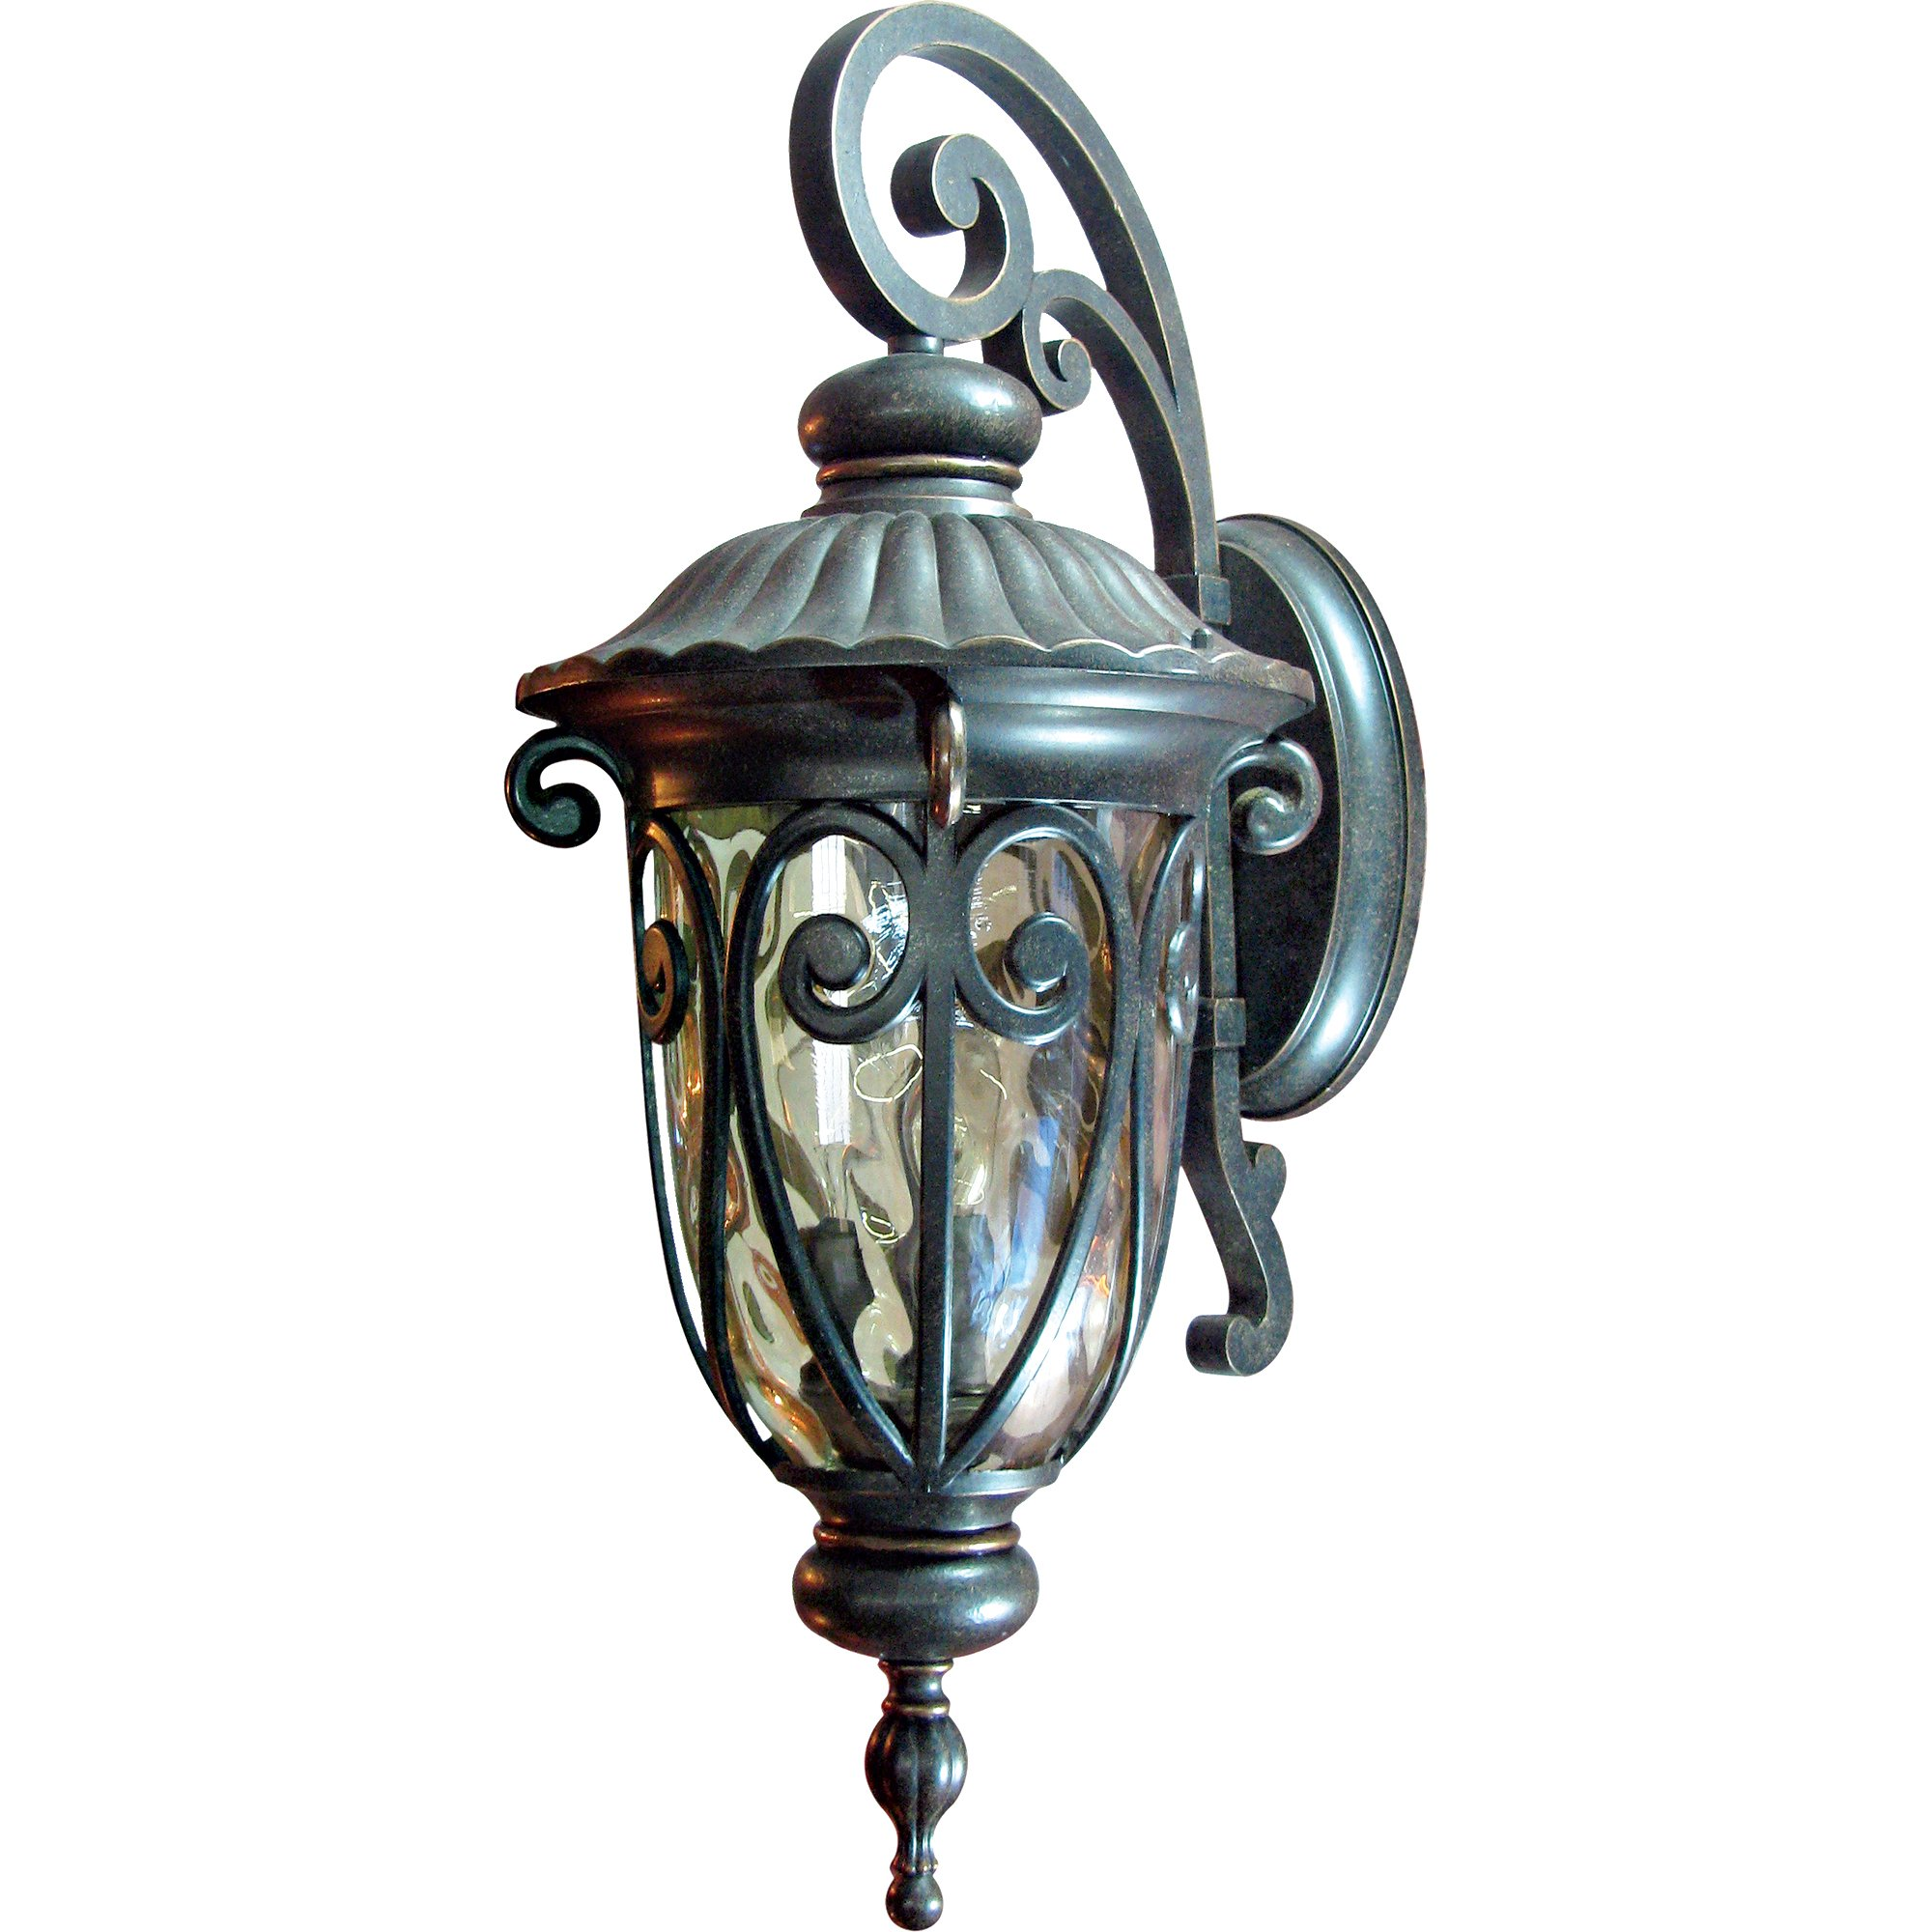 Yosemite Home Decor 519LDIORB Viviana 1-Light Wall Sconce with Gold Stone Glass